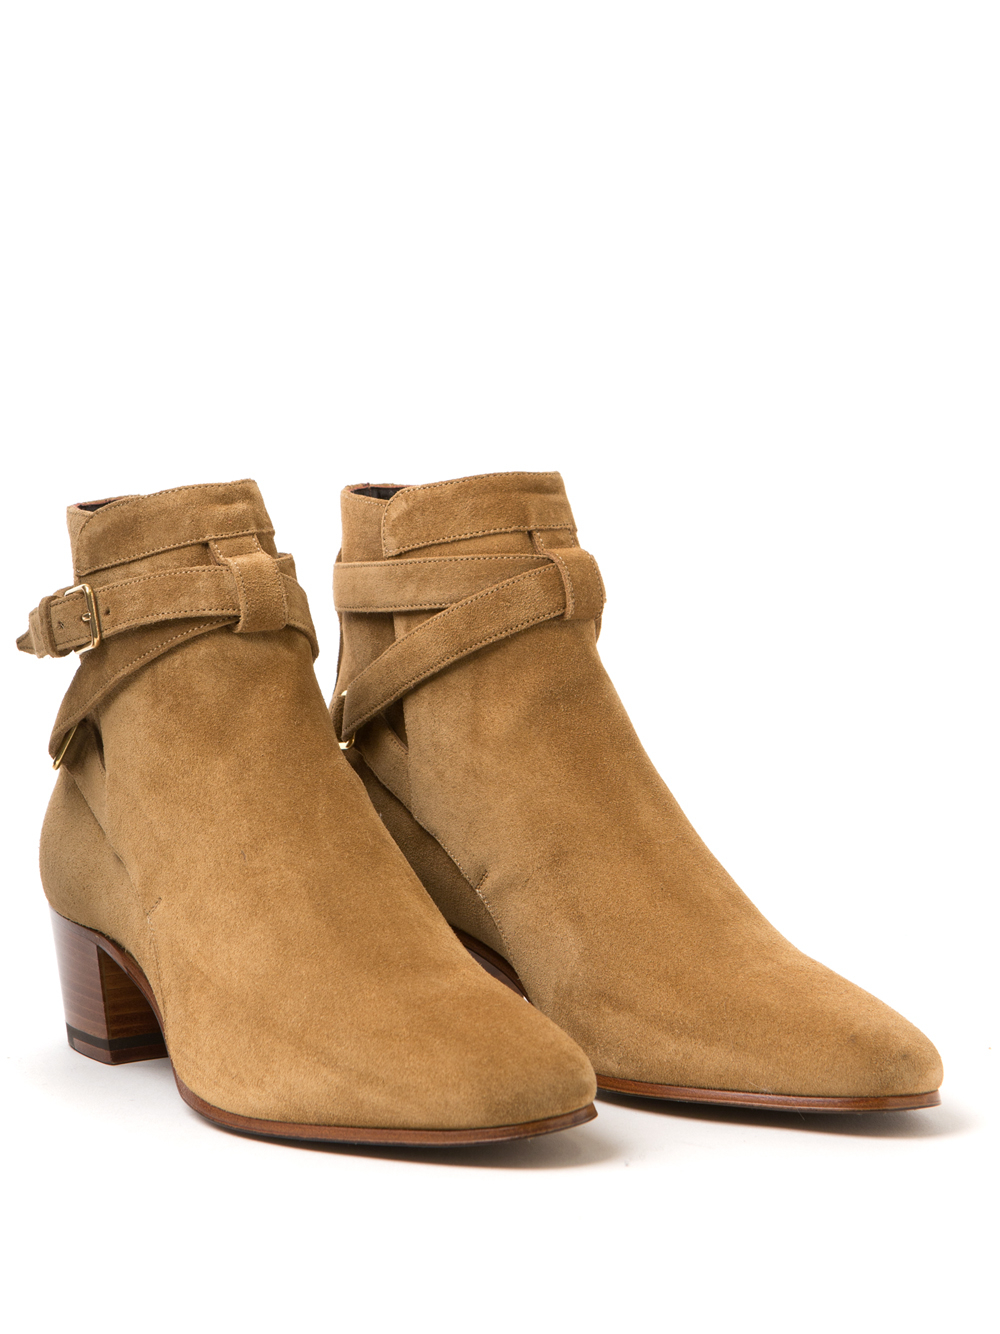 Saint Laurent Blake 40 Bottes Jodhpur - Marron Eyd8rLj